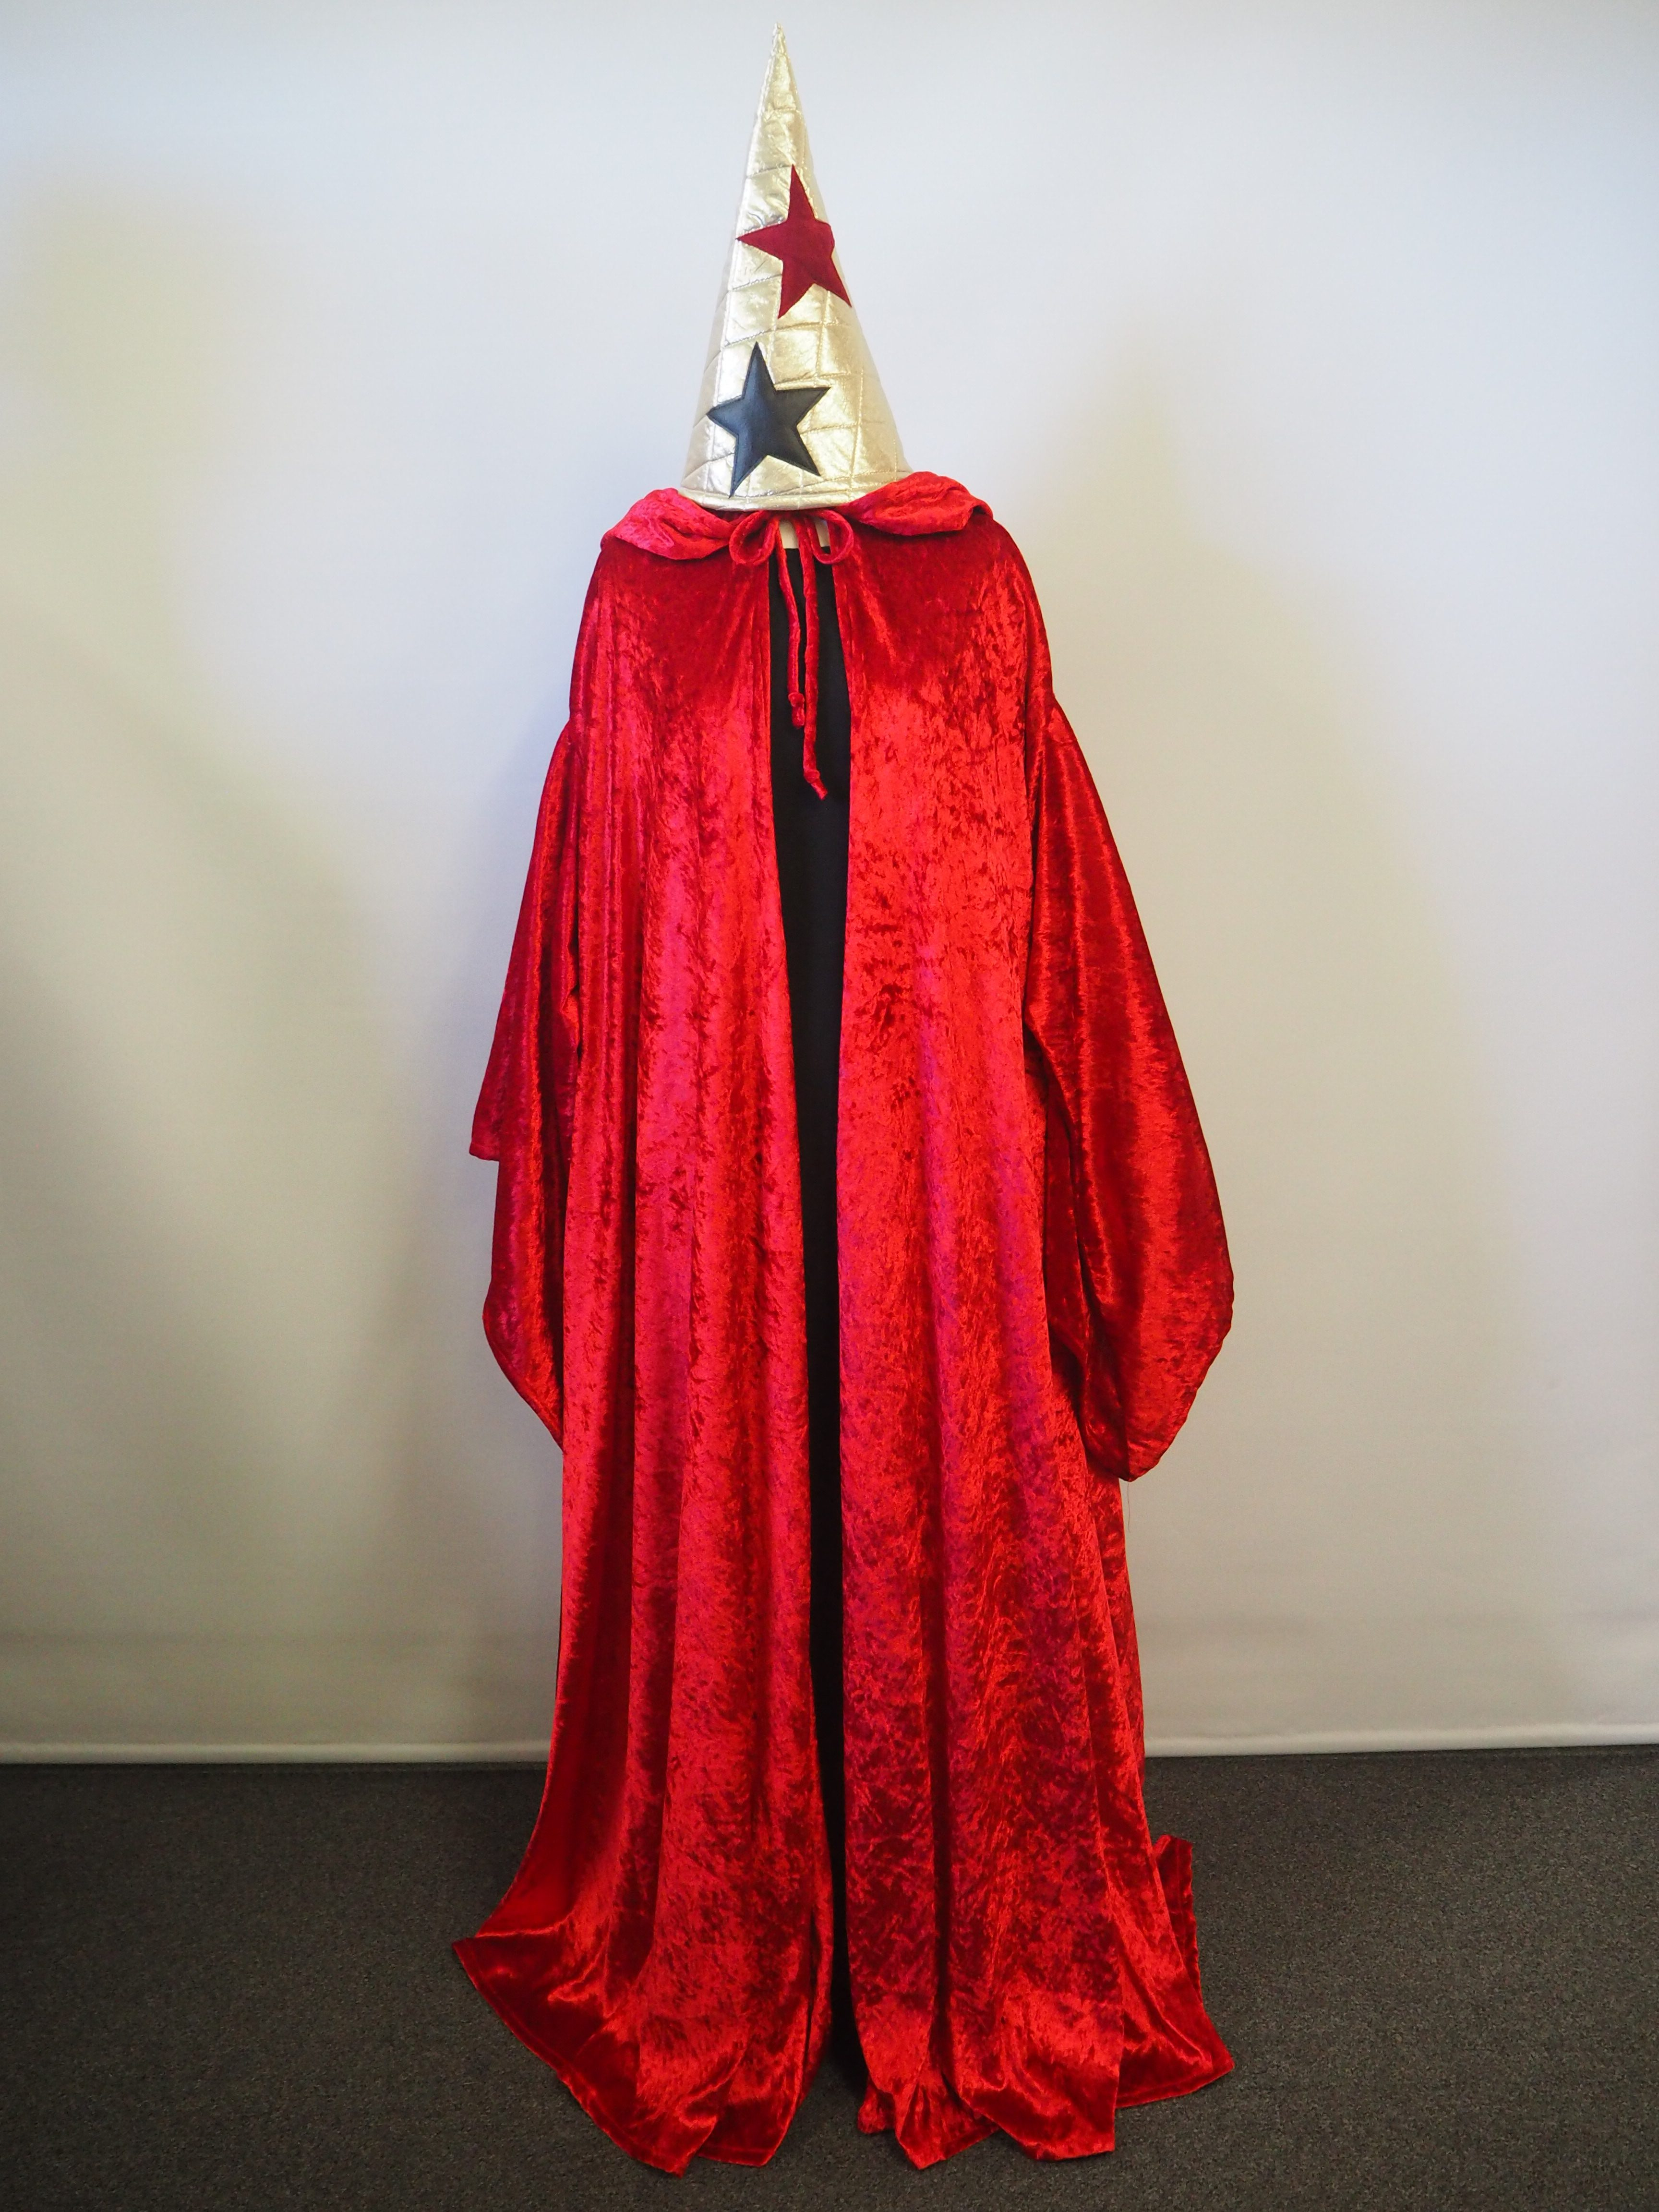 Red Wizard costume Sydney. Red cape Wizard hat u0026 black robe & Witch u0026 Wizard Costumes u0026 Accessories - Acting the Part